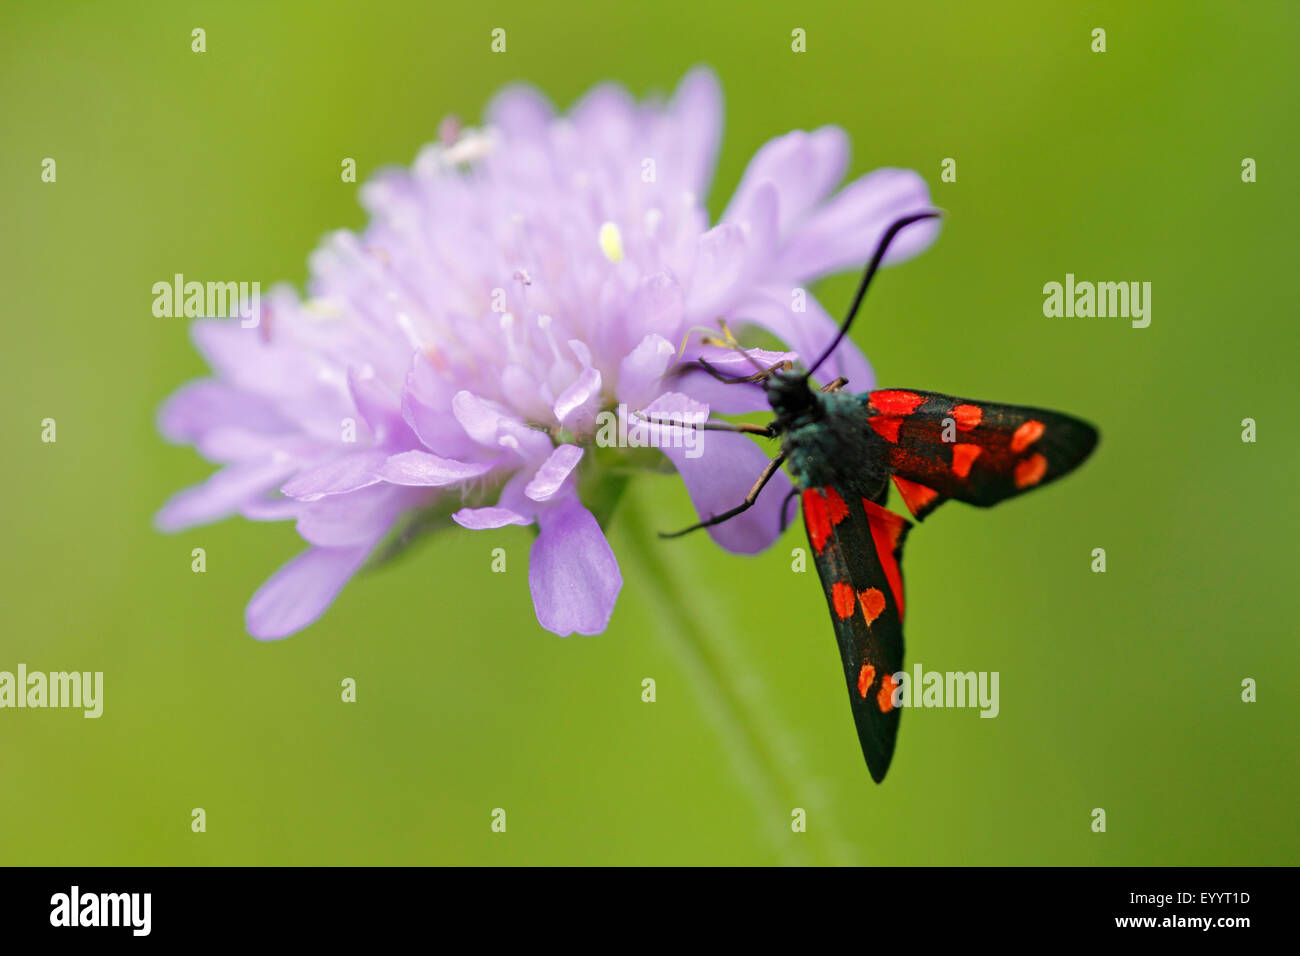 variable burnet (Zygaena ephialtes), stiting on a flower of field scabious, Germany, Baden-Wuerttemberg - Stock Image